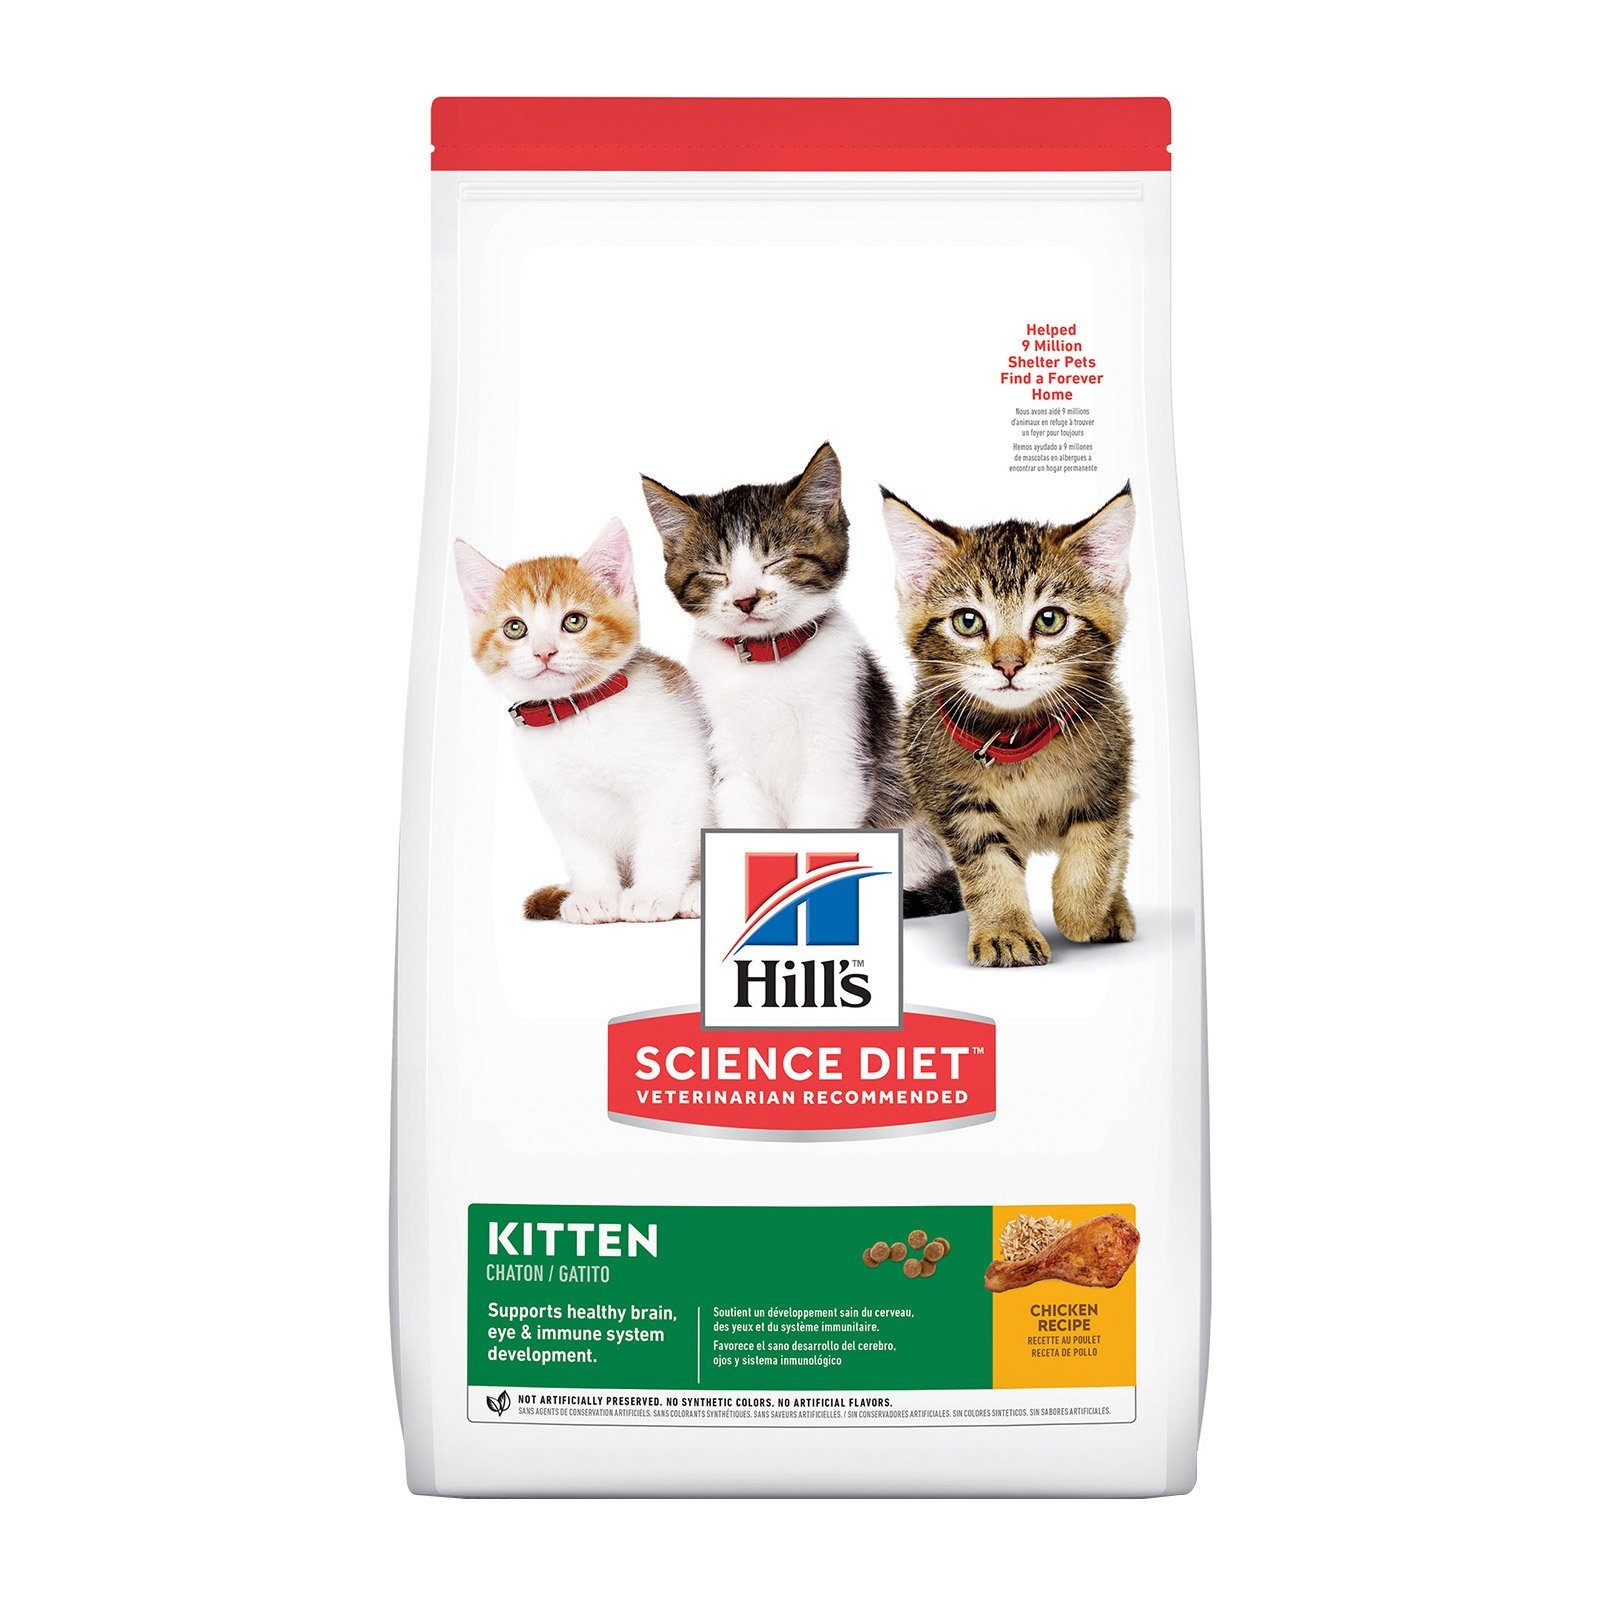 Hill's Science Diet Kitten Chicken Dry Cat Food